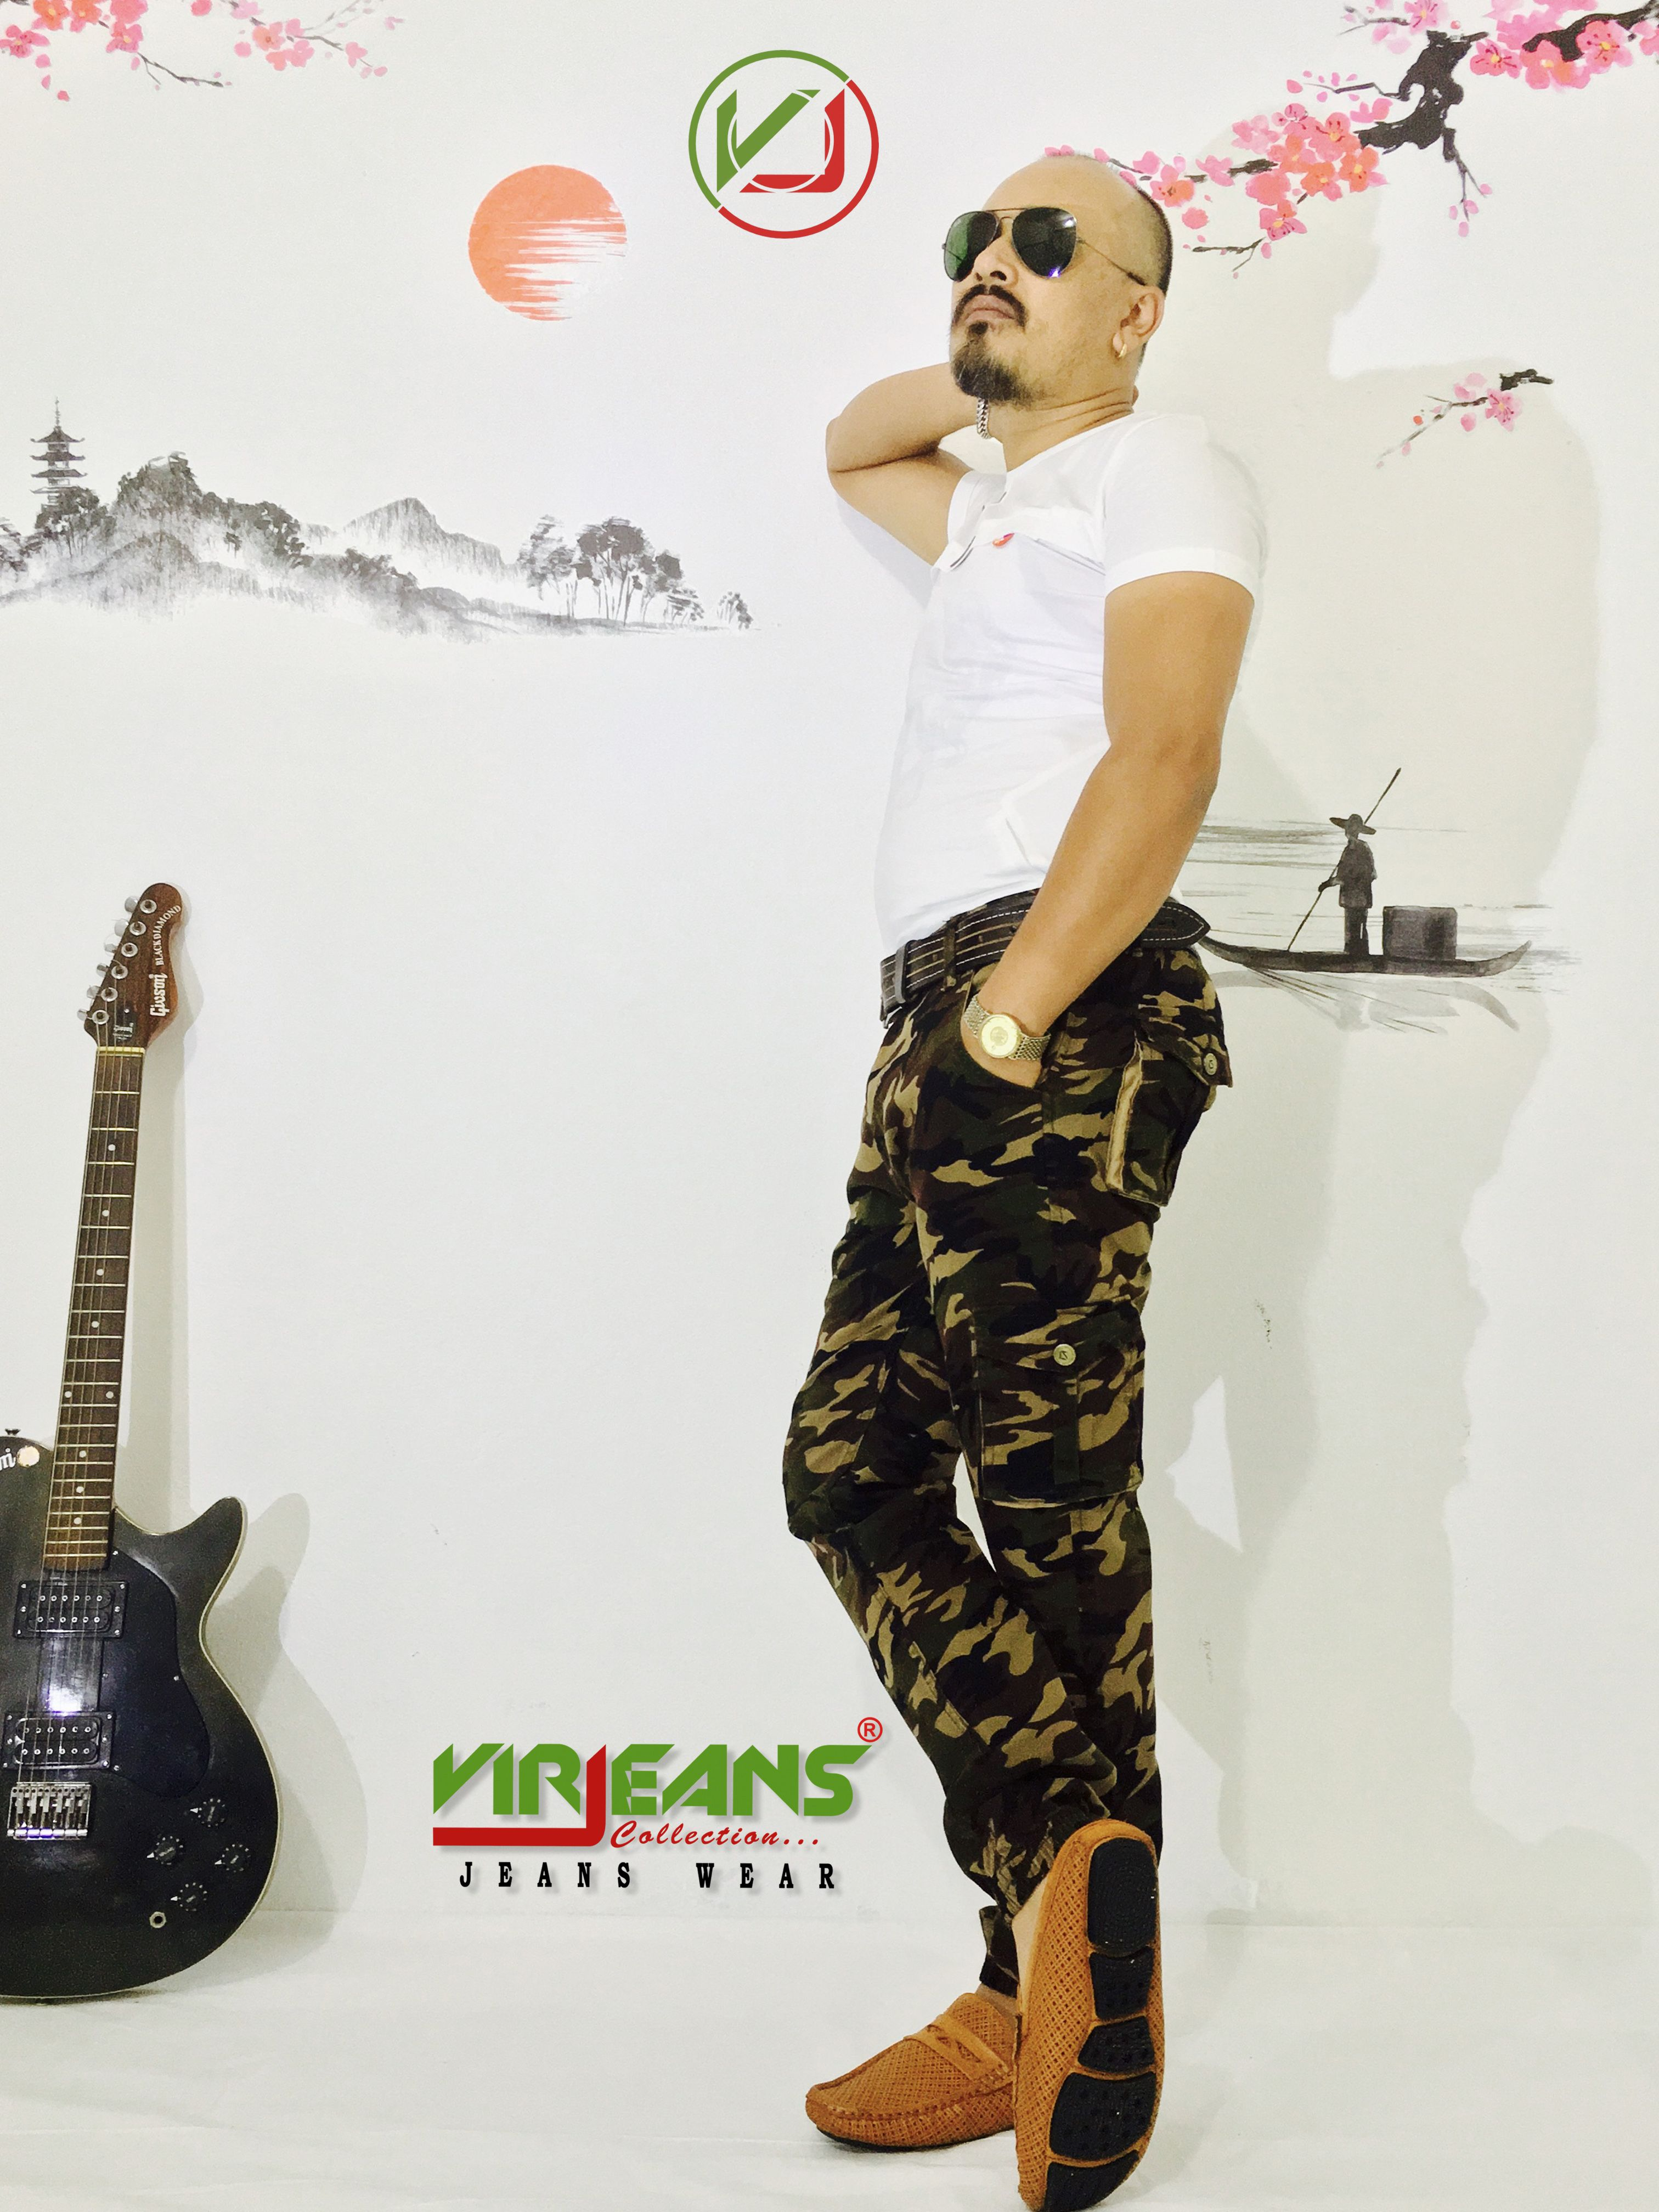 Virjeans Jeans In Nepal Branded Jeans Nepal Fashion In Nepal Top Clothing Brands Popular Clothing Brands Clothing Brand